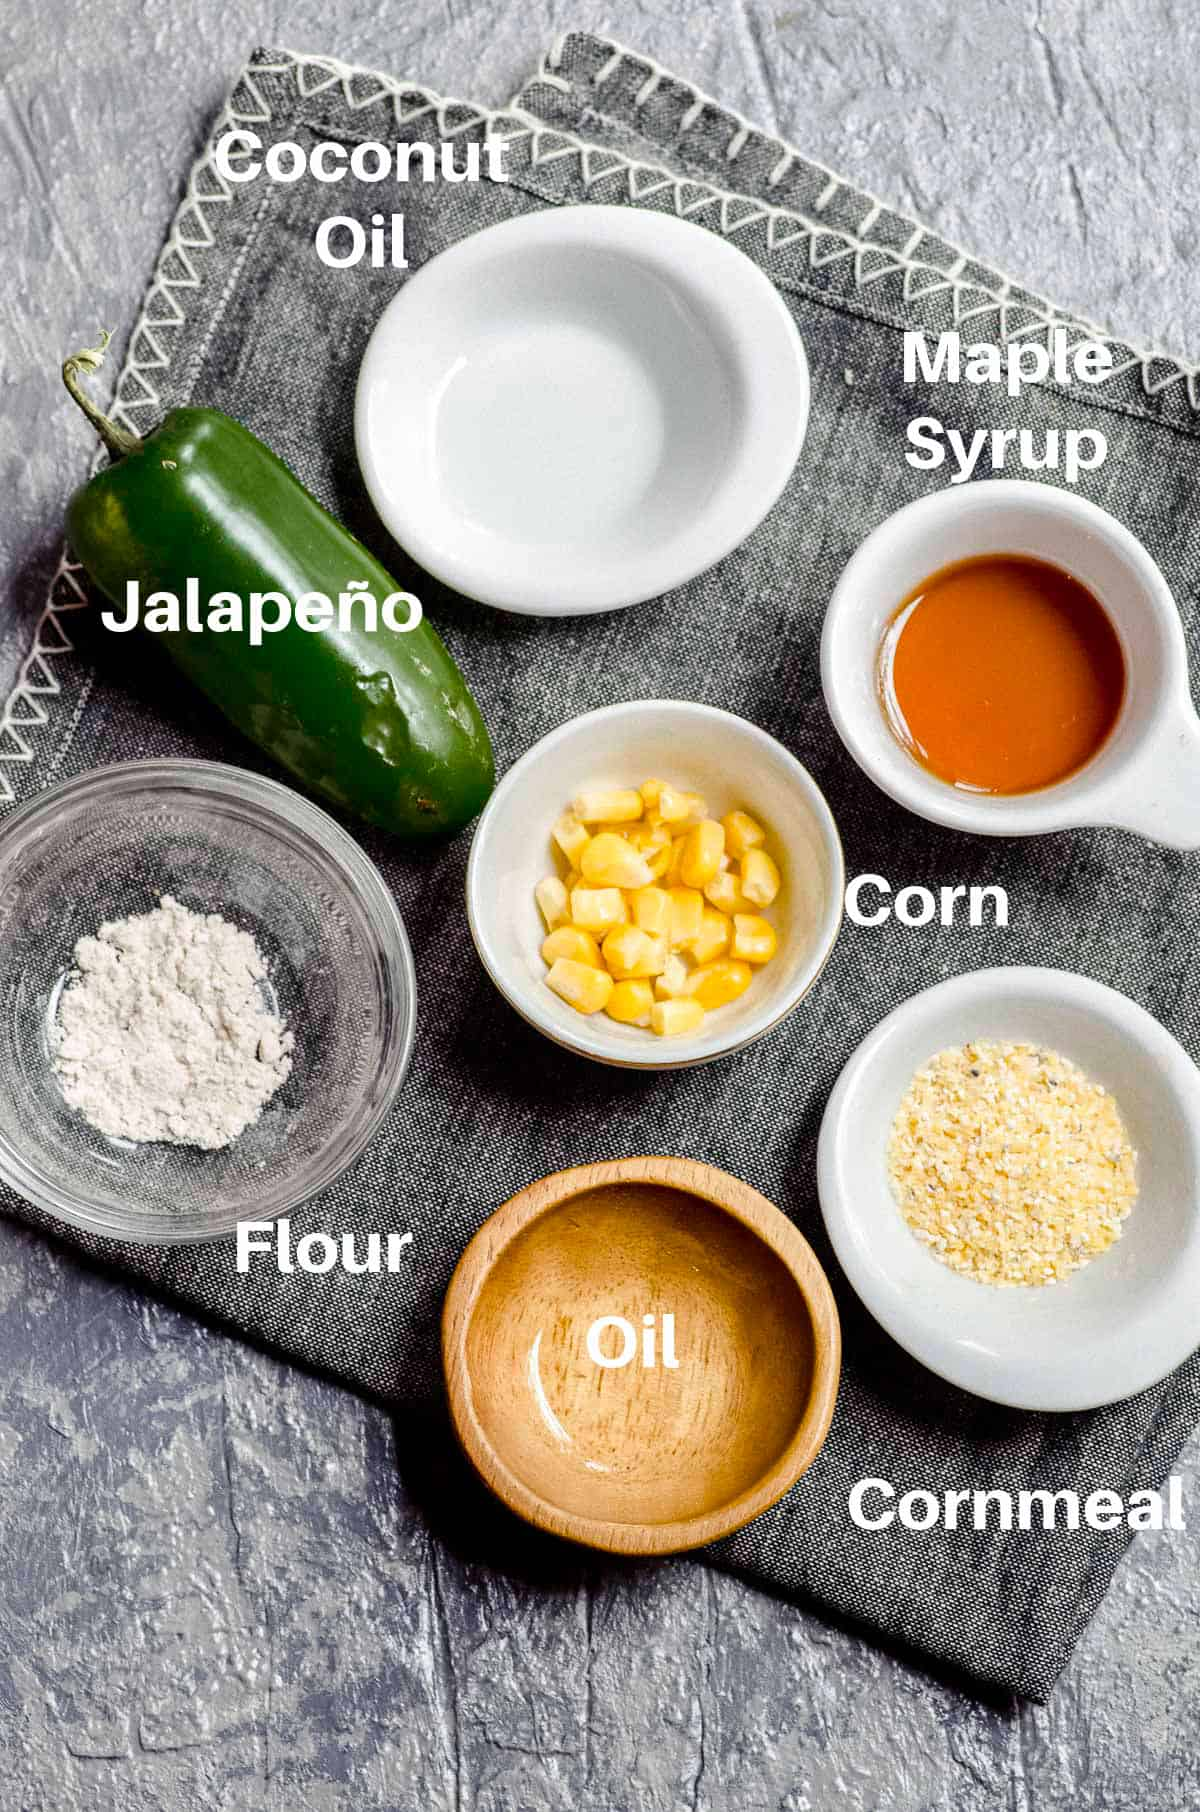 Overhead view of labeled  ingredients for jalapeno vegan cornbread in tiny bowls. Jalapeno, maple syrup, baking powder, corn kernels, corn meal